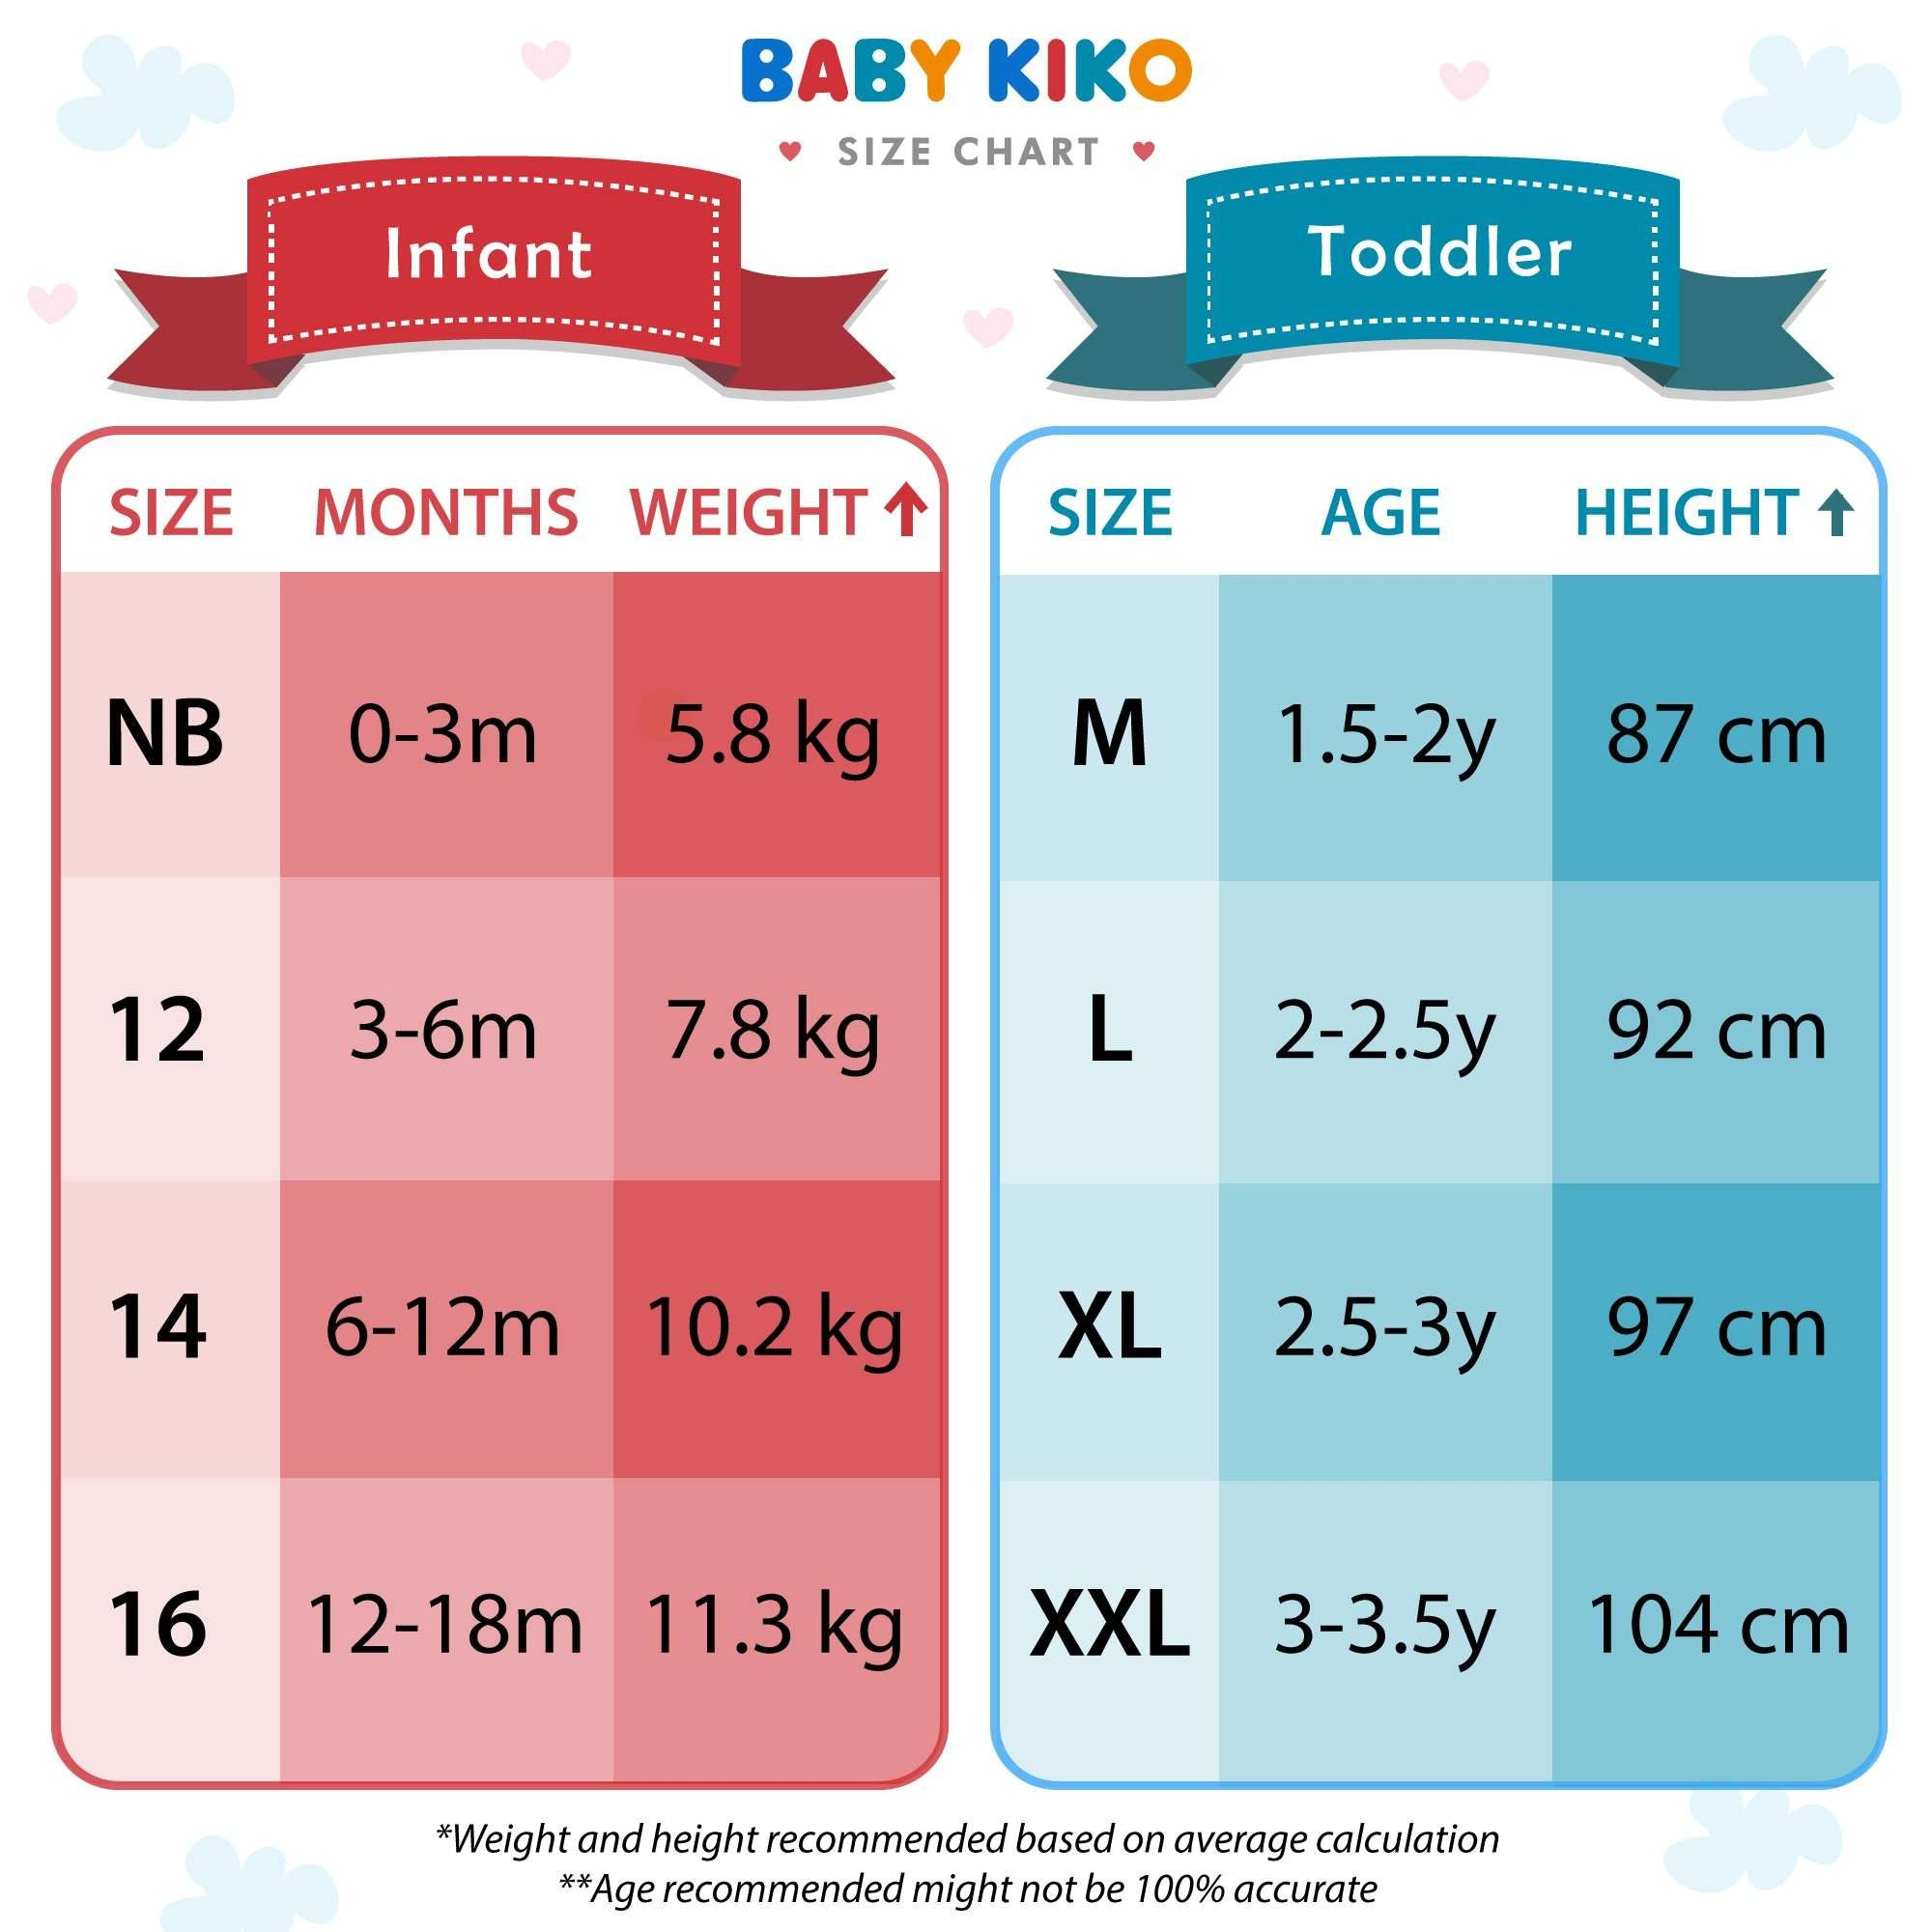 BABY KIKO BABY BOY SLEEP WEAR LONG SLEEVE LONG PANTS SUIT - KHAKI B921104-4318-K5 : Buy Baby KIKO online at CMG.MY